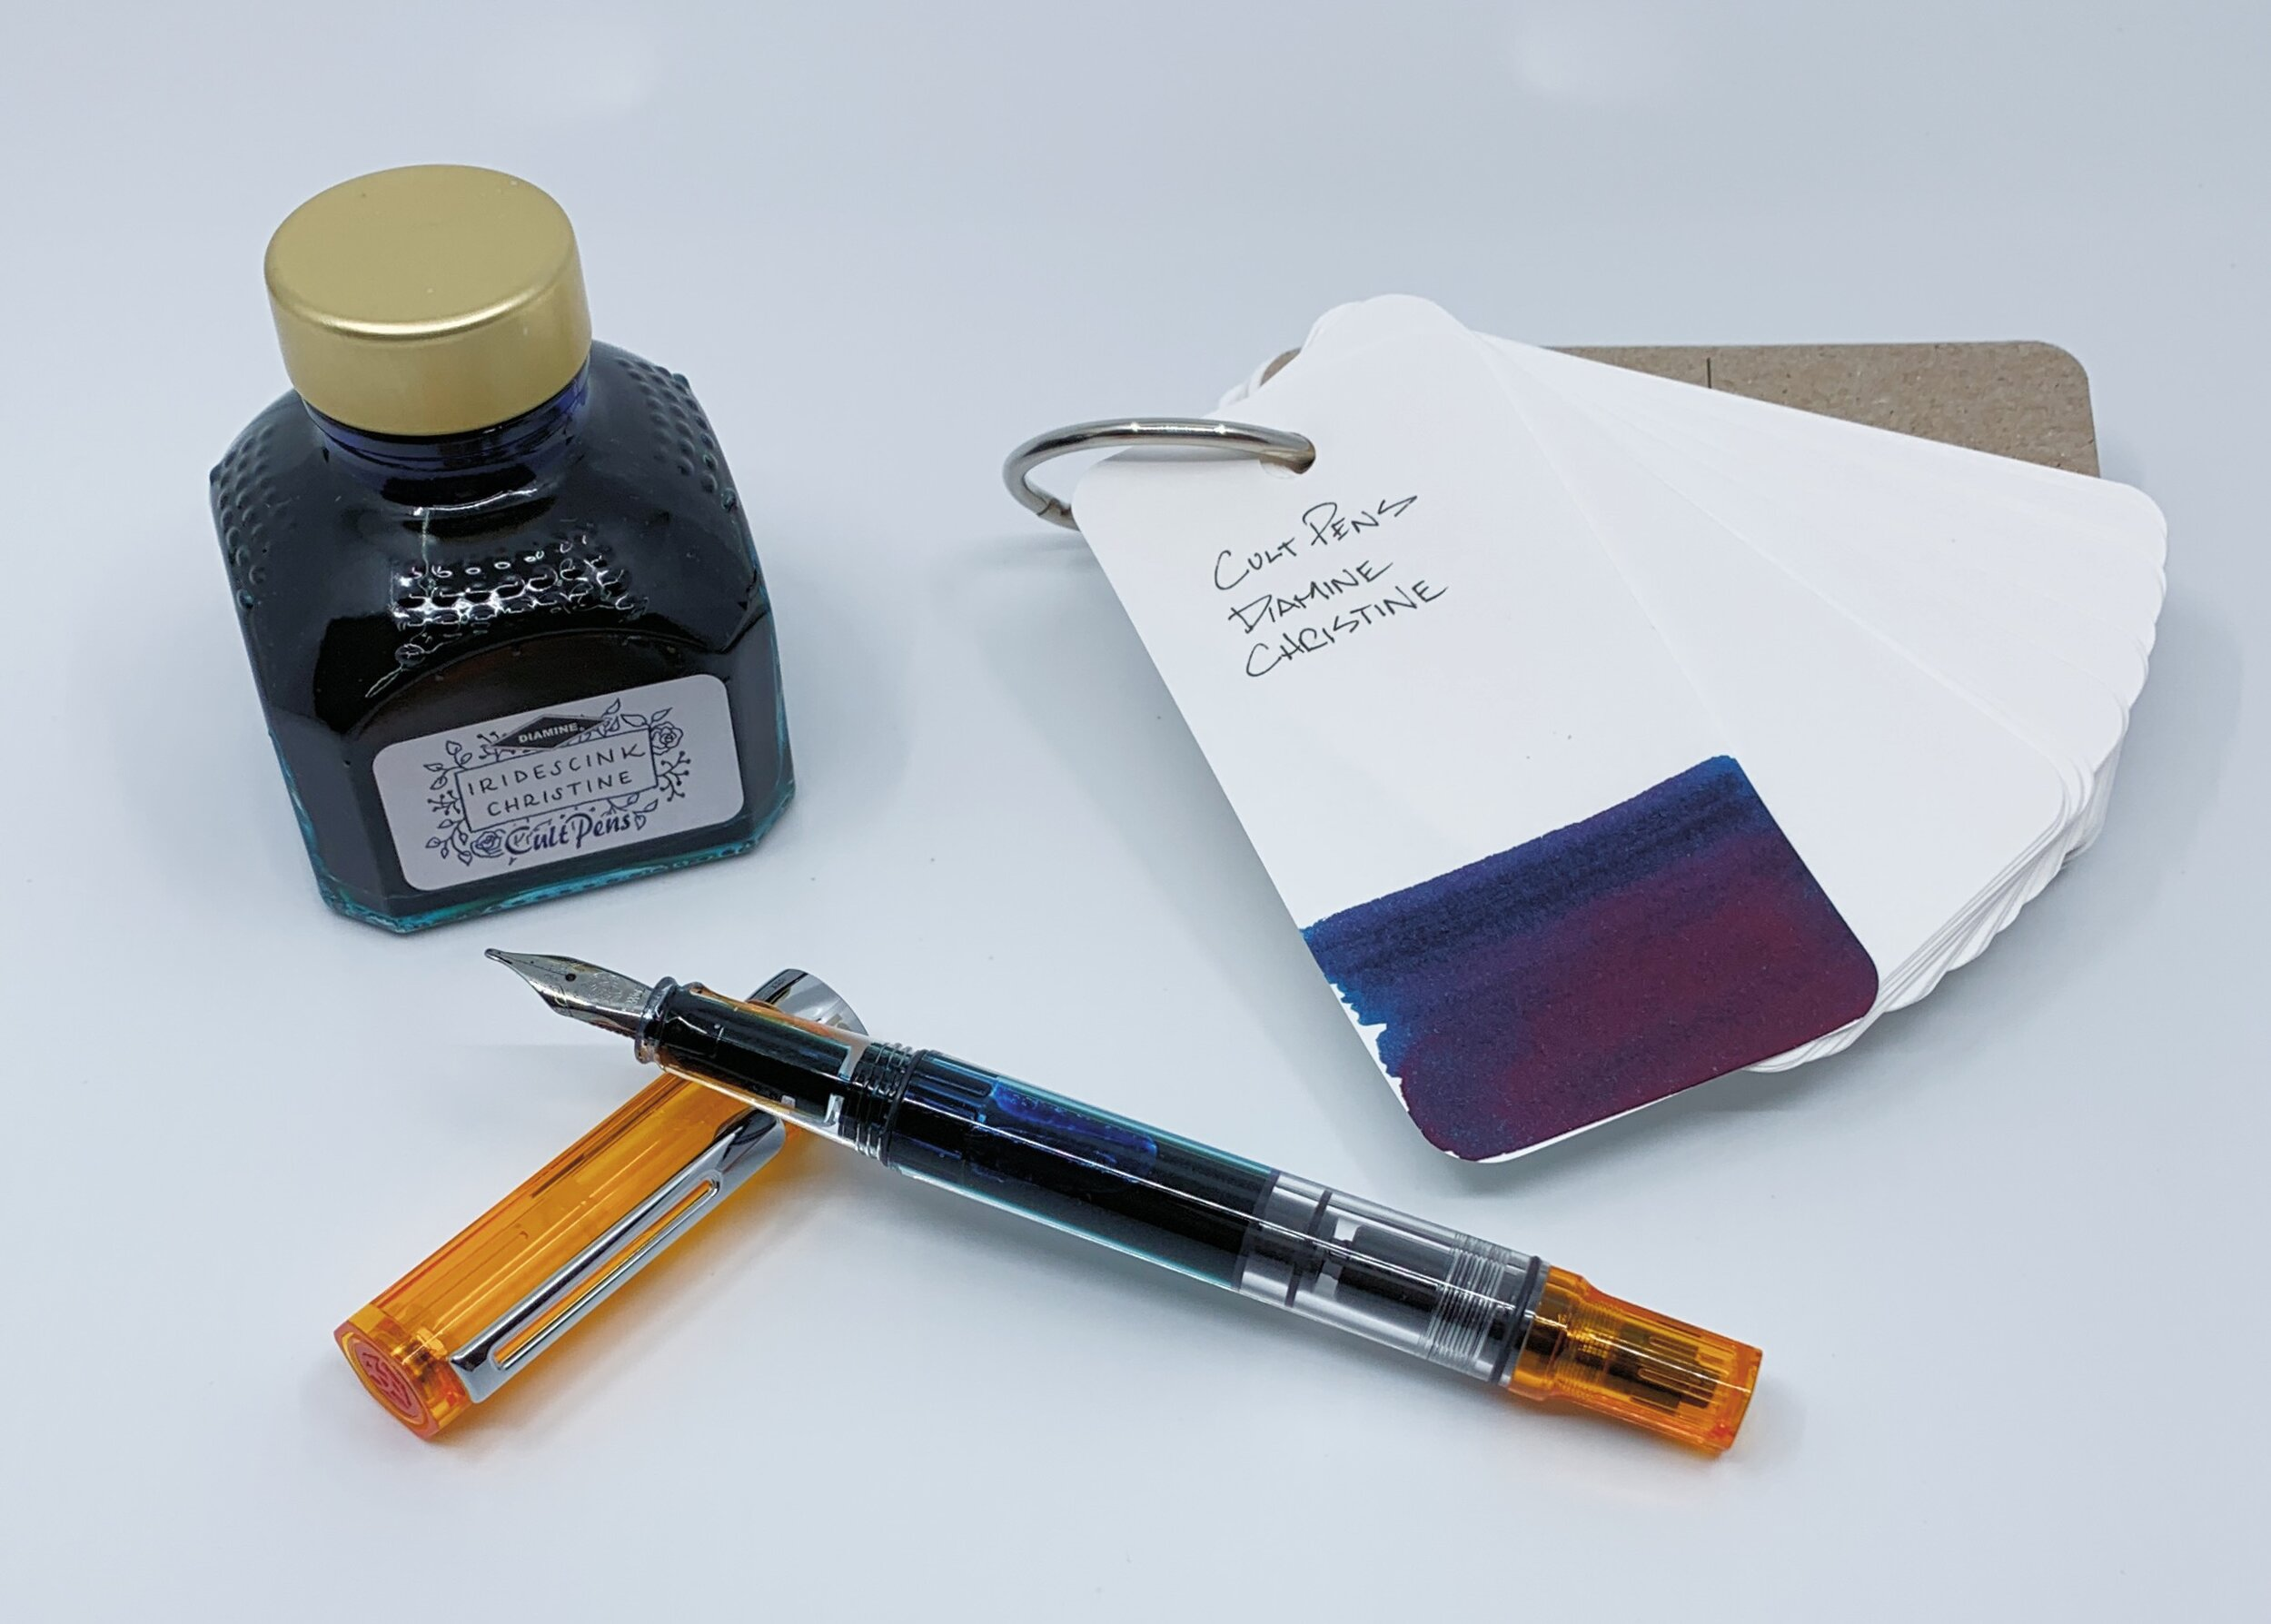 Cult Pens Diamine Christine Iridescink Review